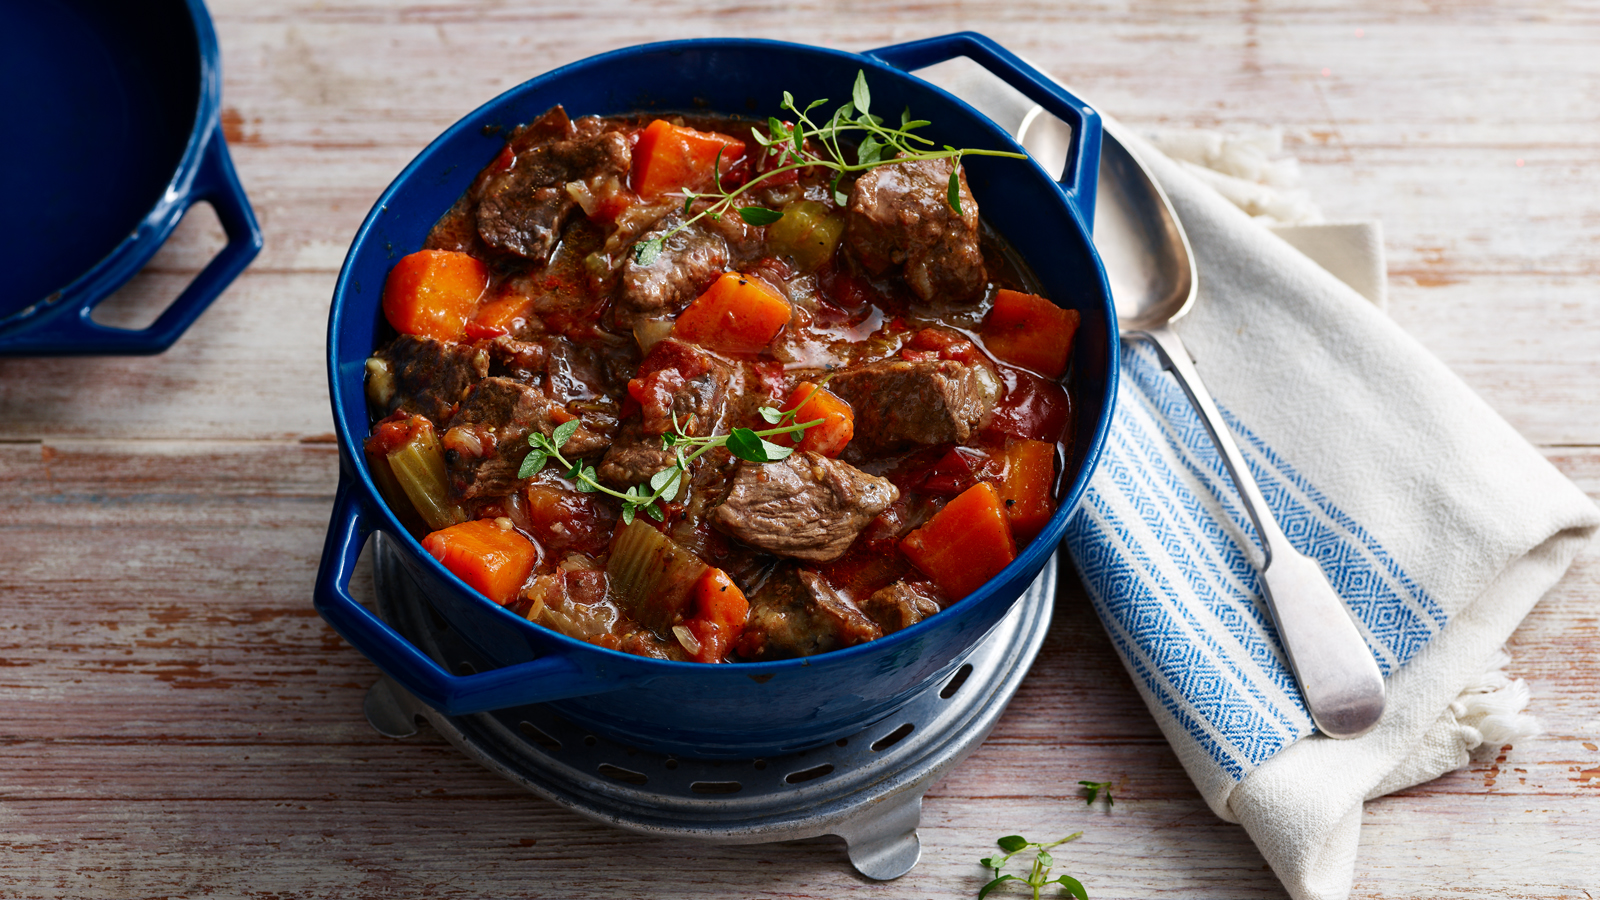 Beef And Ale Stew Recipe Bbc Food